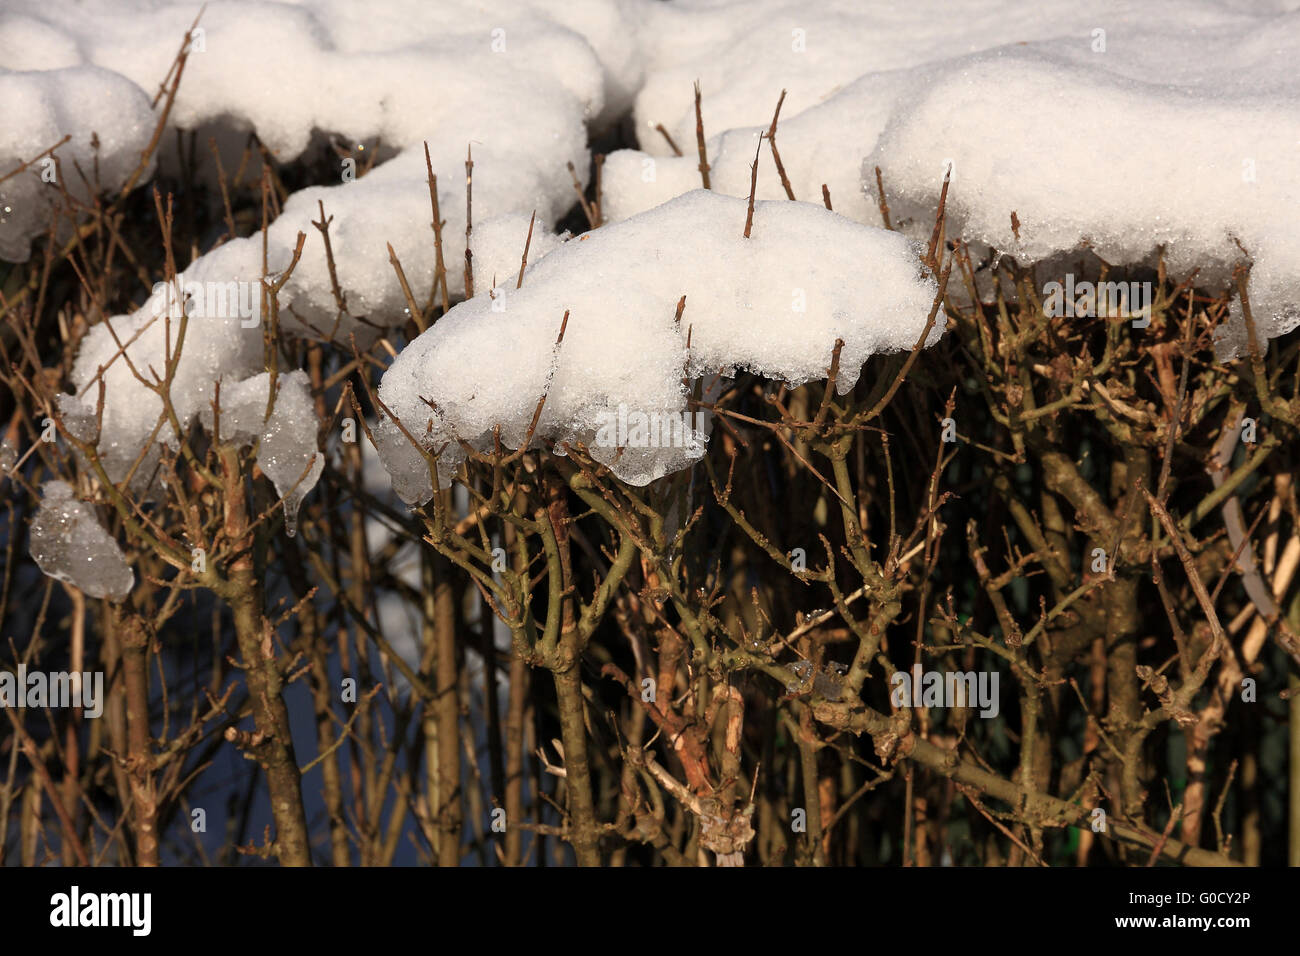 Snow on shrubbery - Stock Image